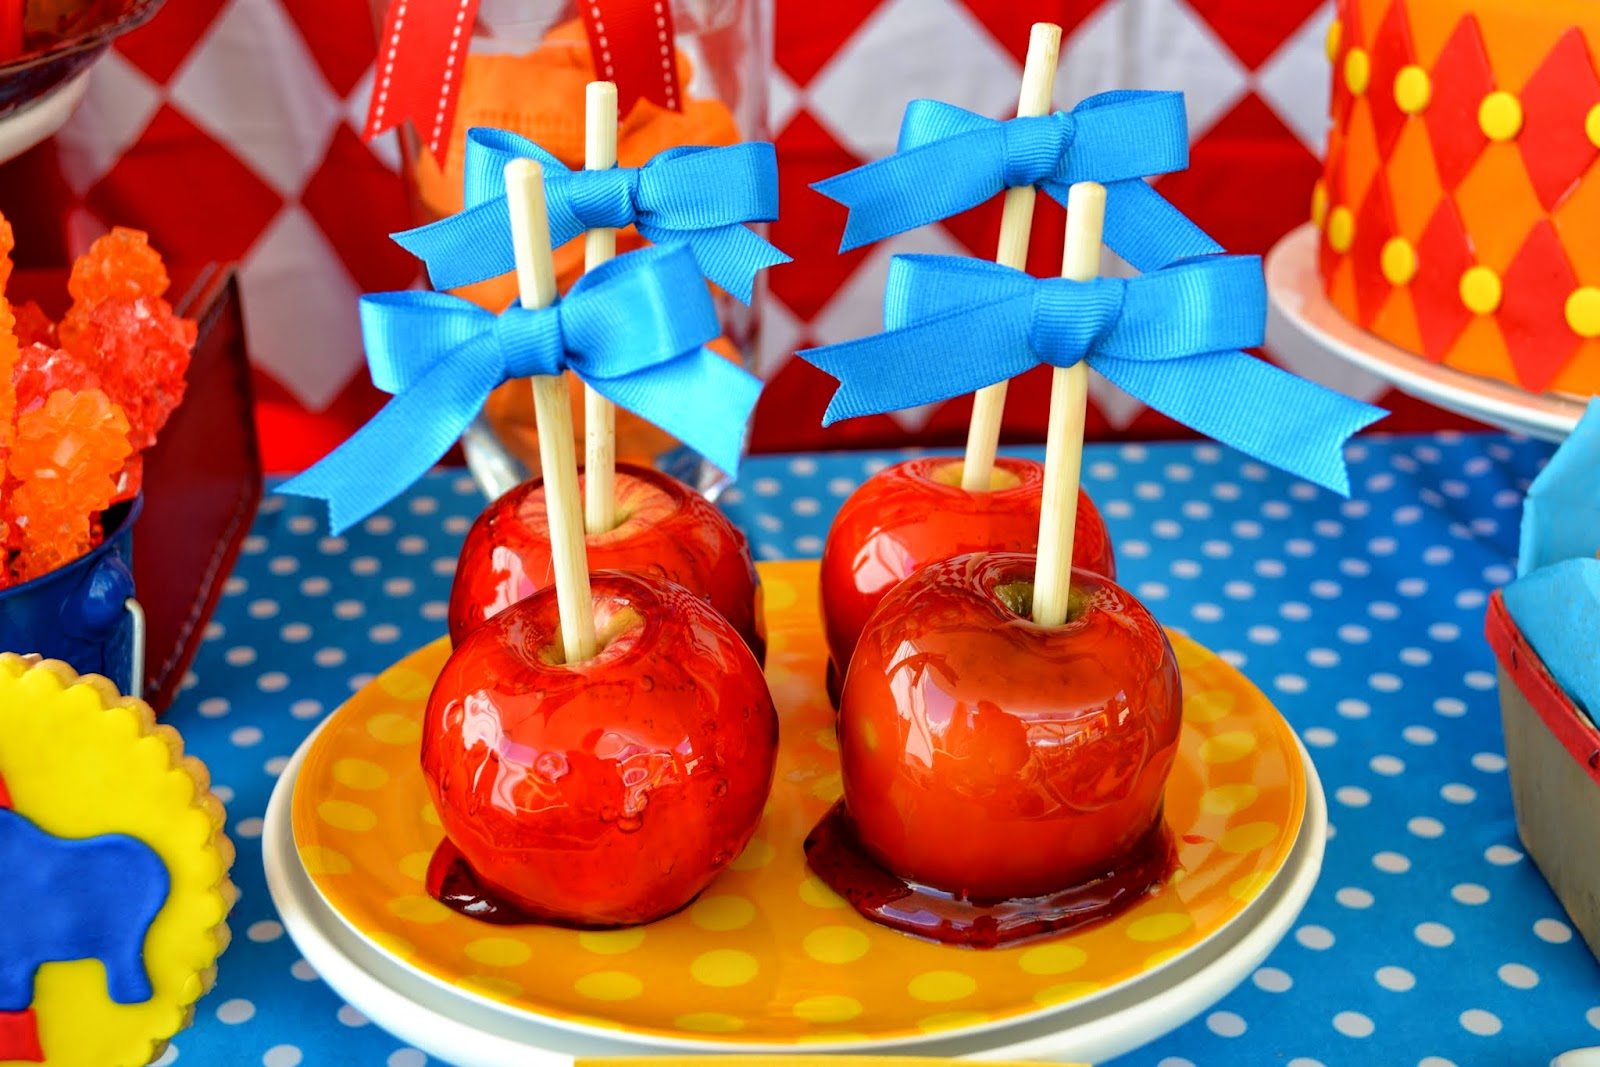 Partylicious events pr carnival birthday - Carnival foods ideas ...